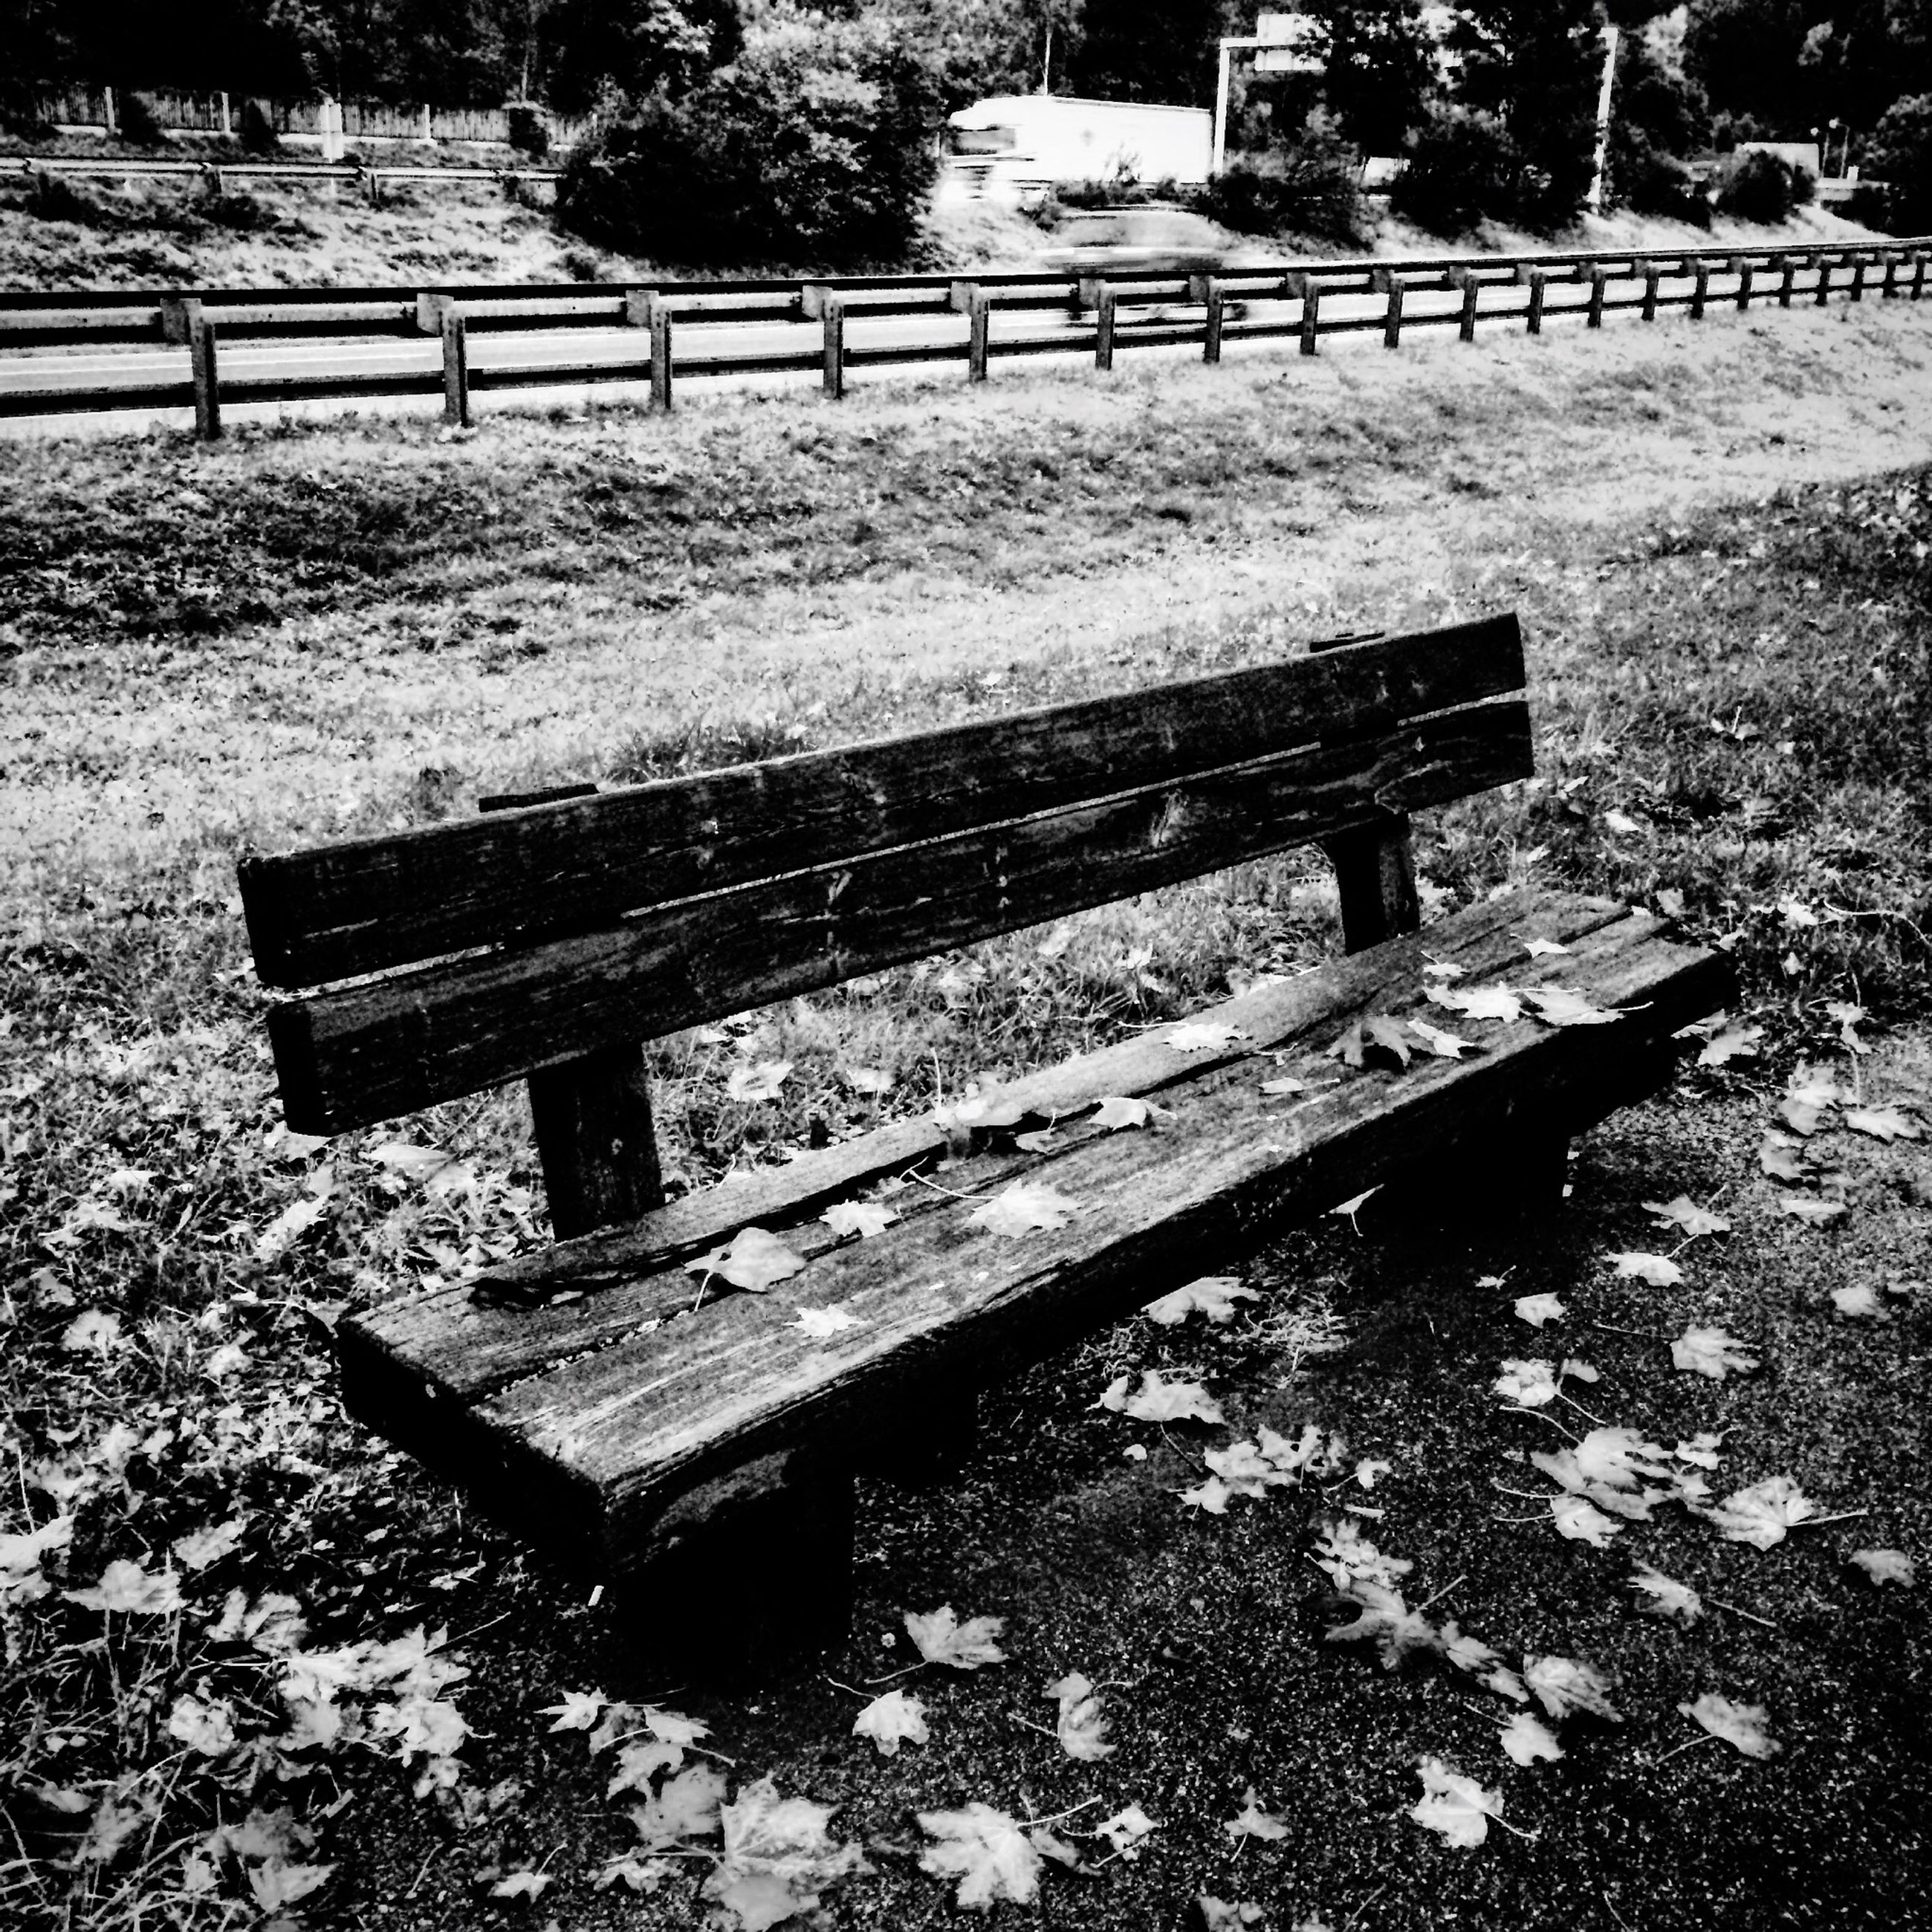 bench, tree, wood - material, park bench, park - man made space, tranquility, empty, absence, nature, wooden, park, grass, tranquil scene, day, outdoors, seat, sunlight, wood, field, no people